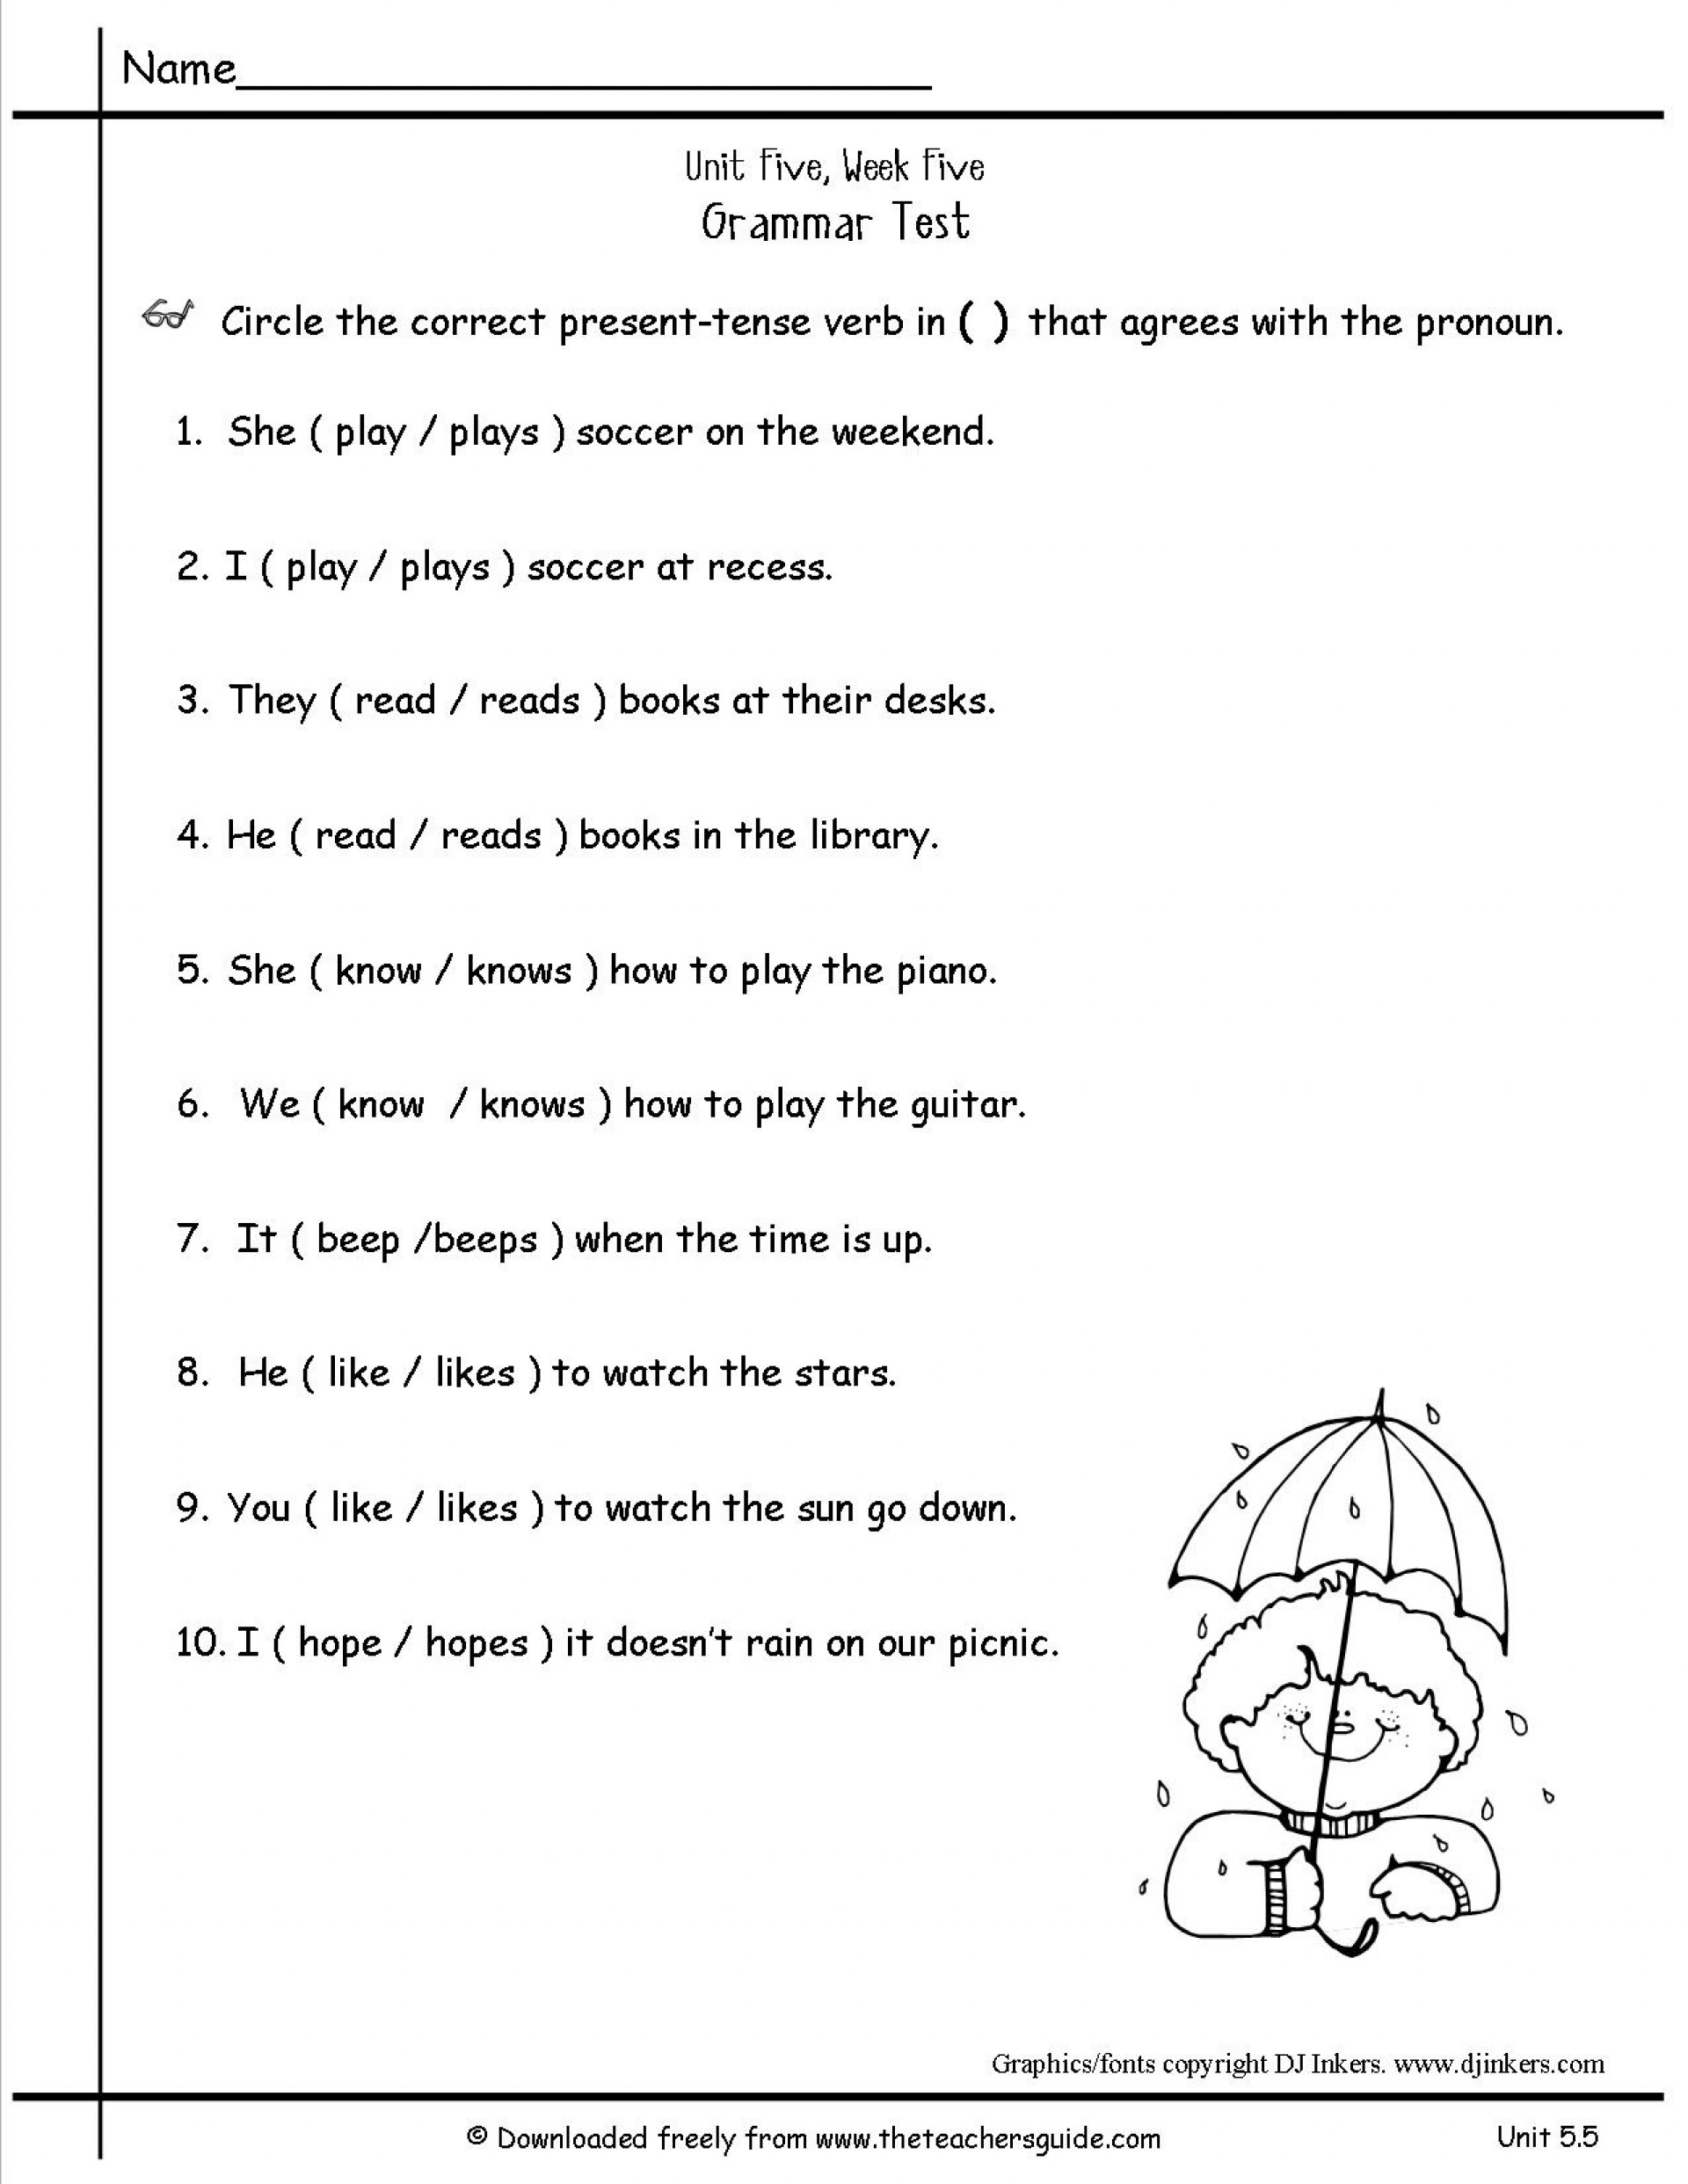 Pronoun Worksheets 2Nd Grade For Print | Worksheet News - Free Printable Pronoun Worksheets For 2Nd Grade